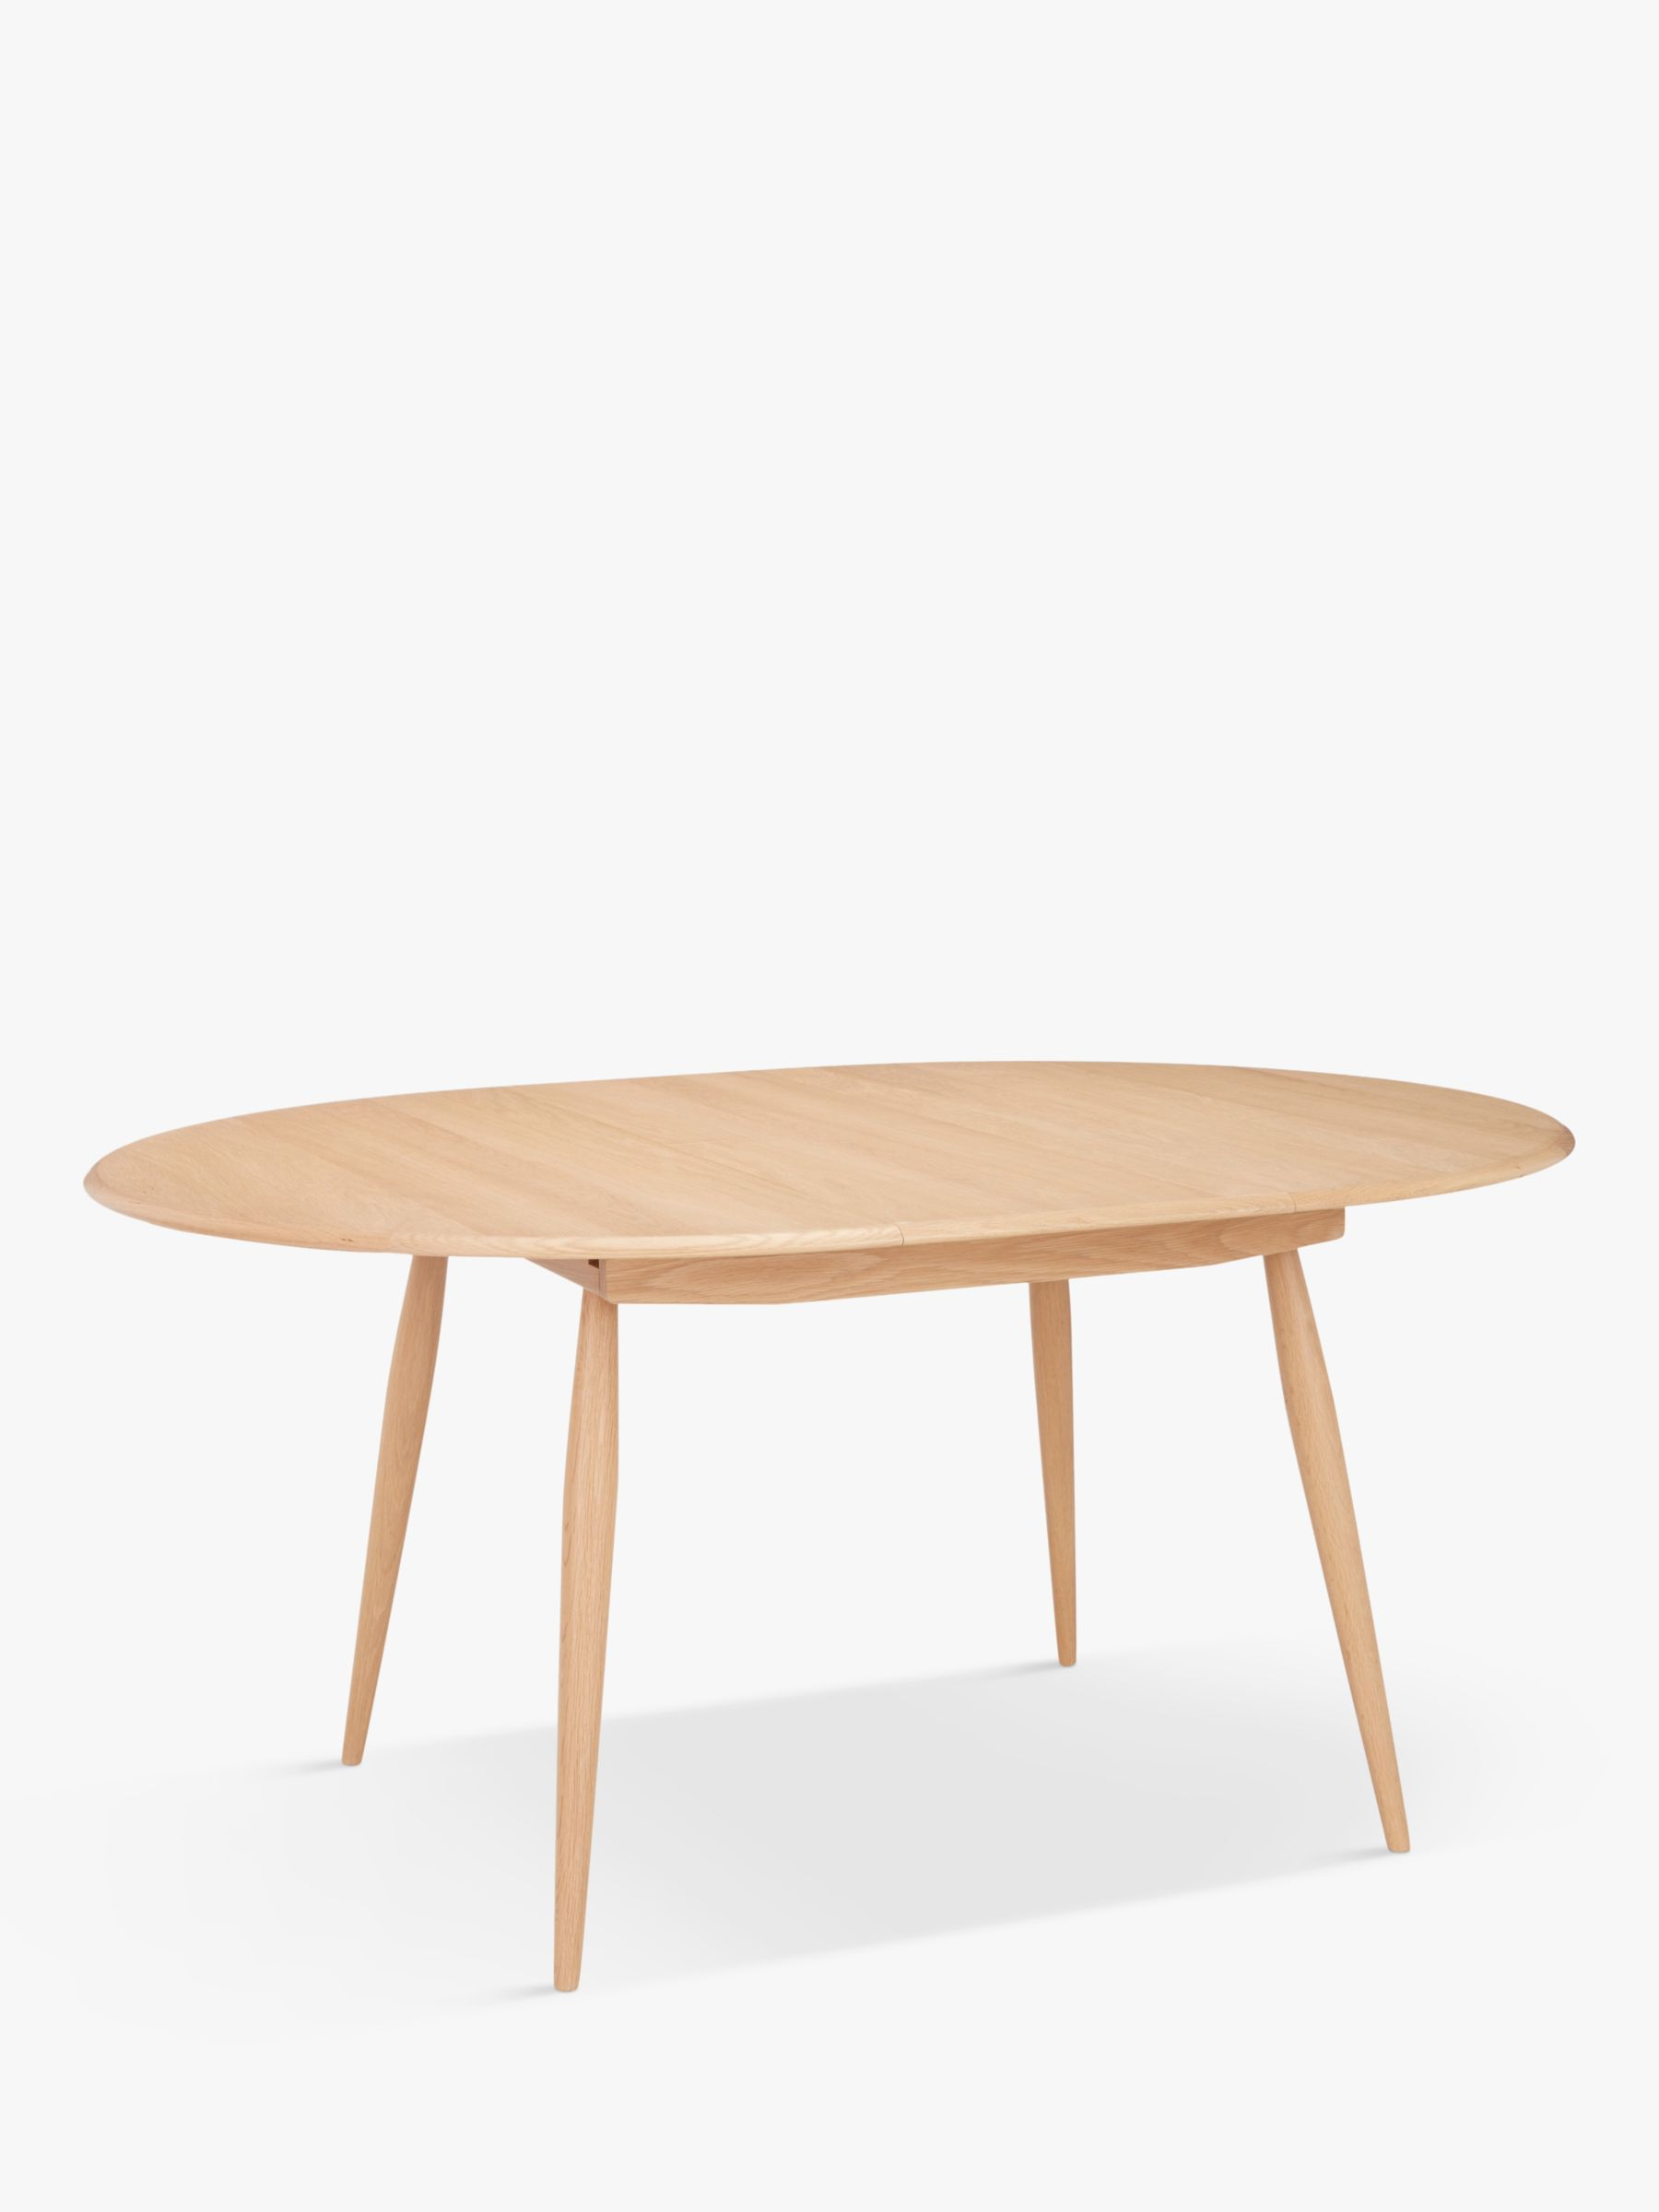 ercol for John Lewis ercol for John Lewis Shalstone Round Extending Dining Table